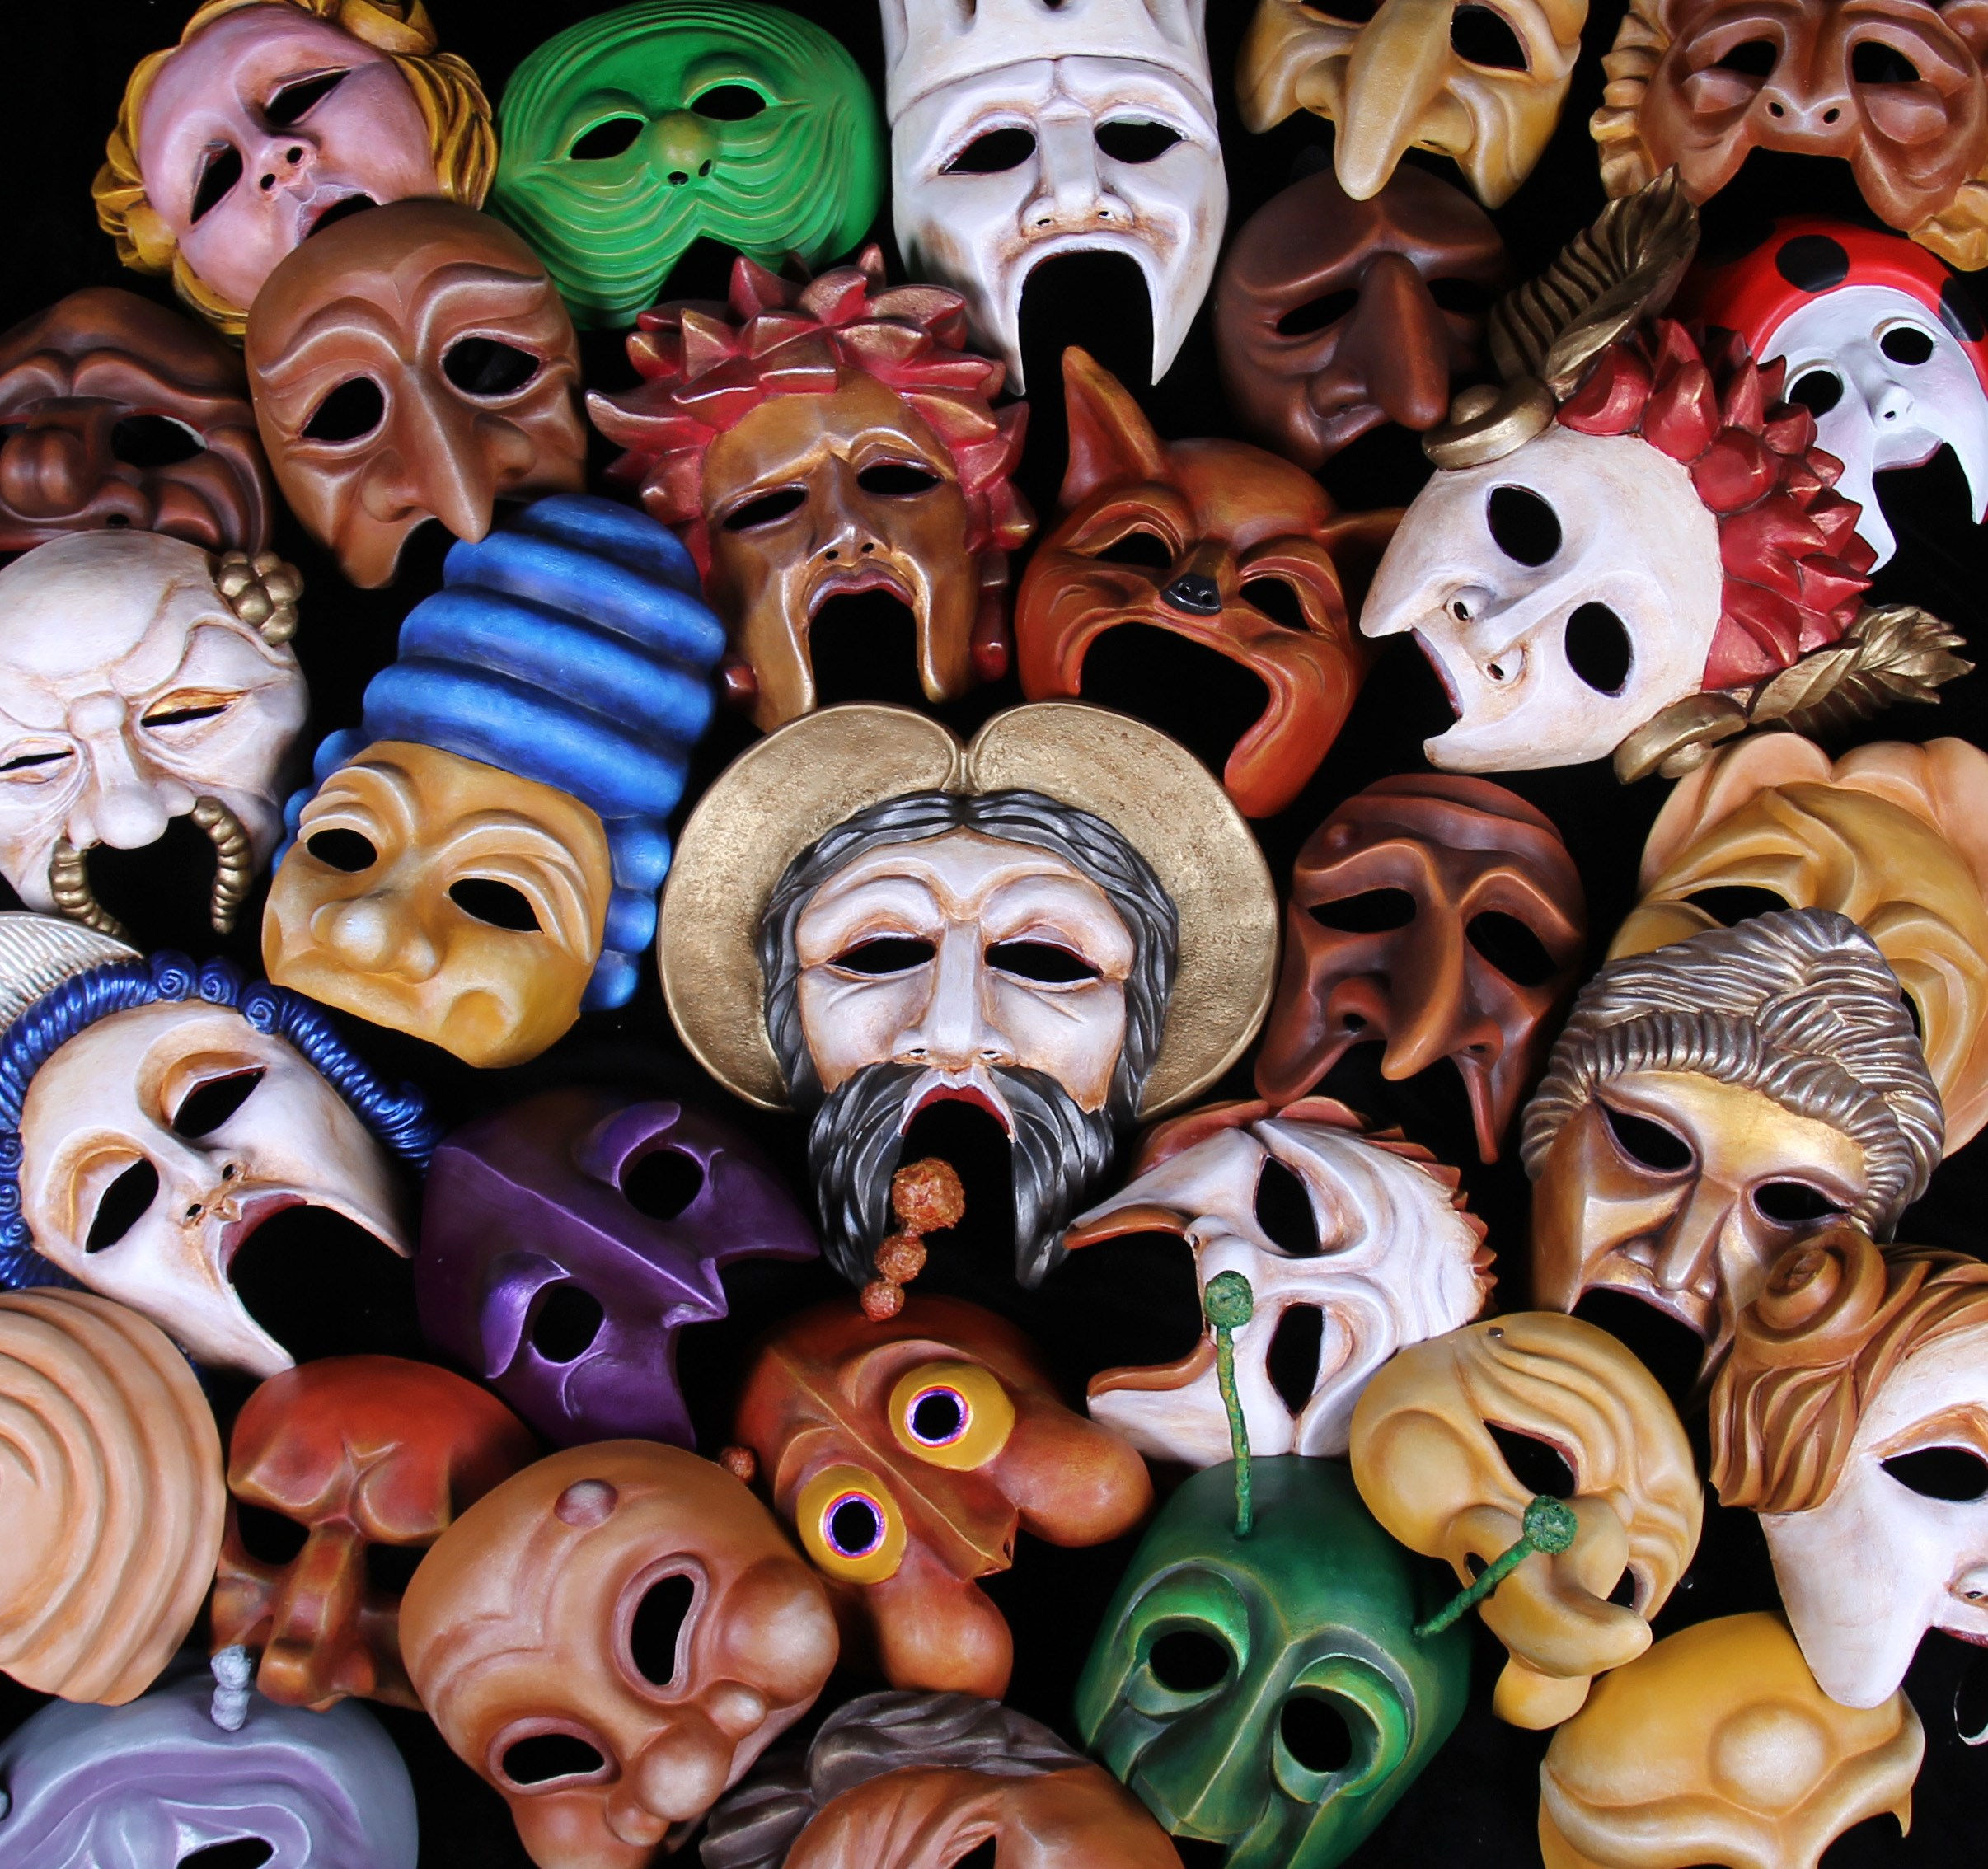 International artist and business owner brings exhibition of theater masks to New Harmony